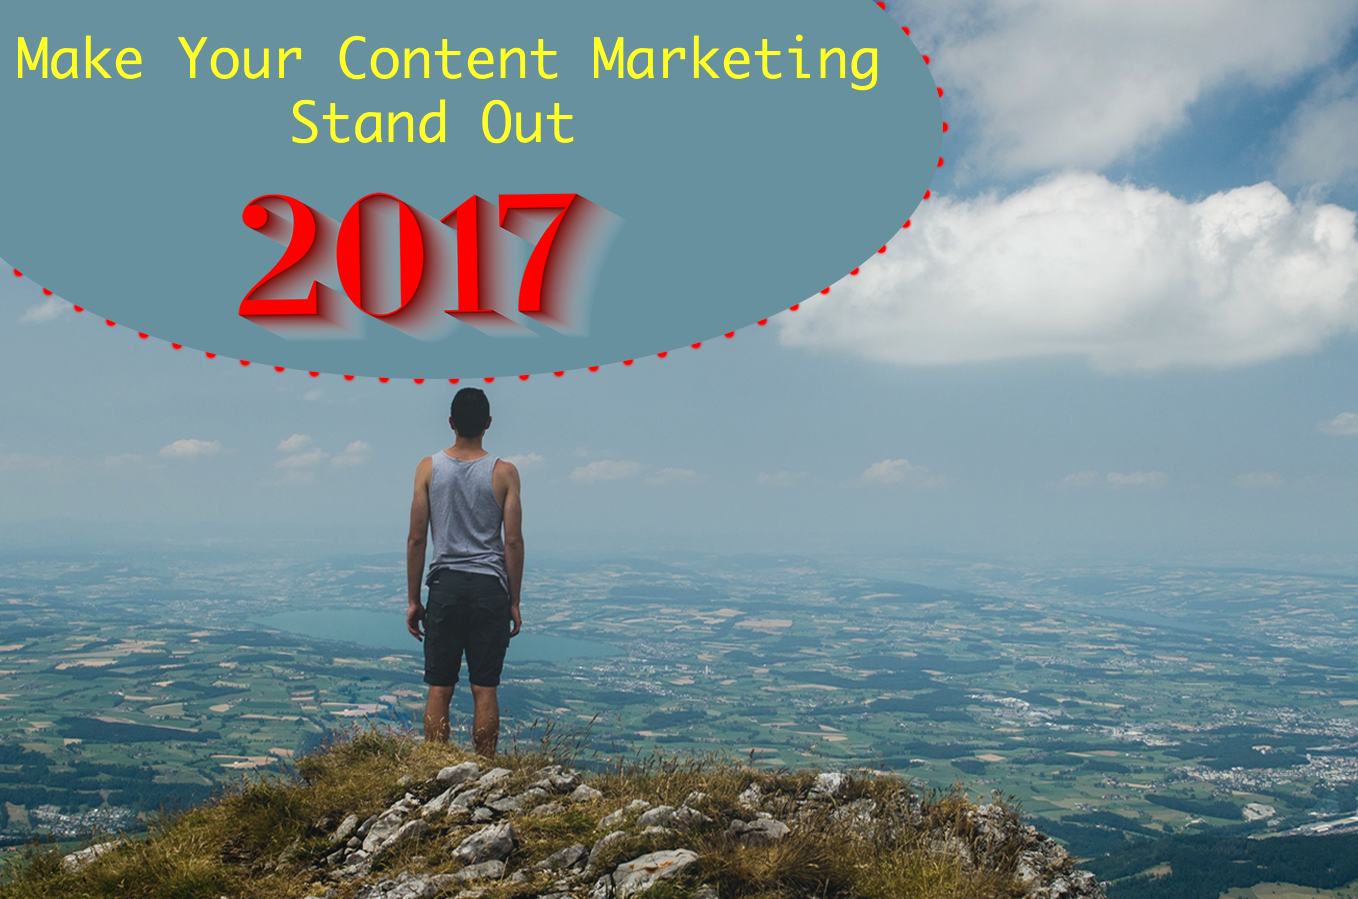 make-you-content-marketing-stand-out-in-2017-fw